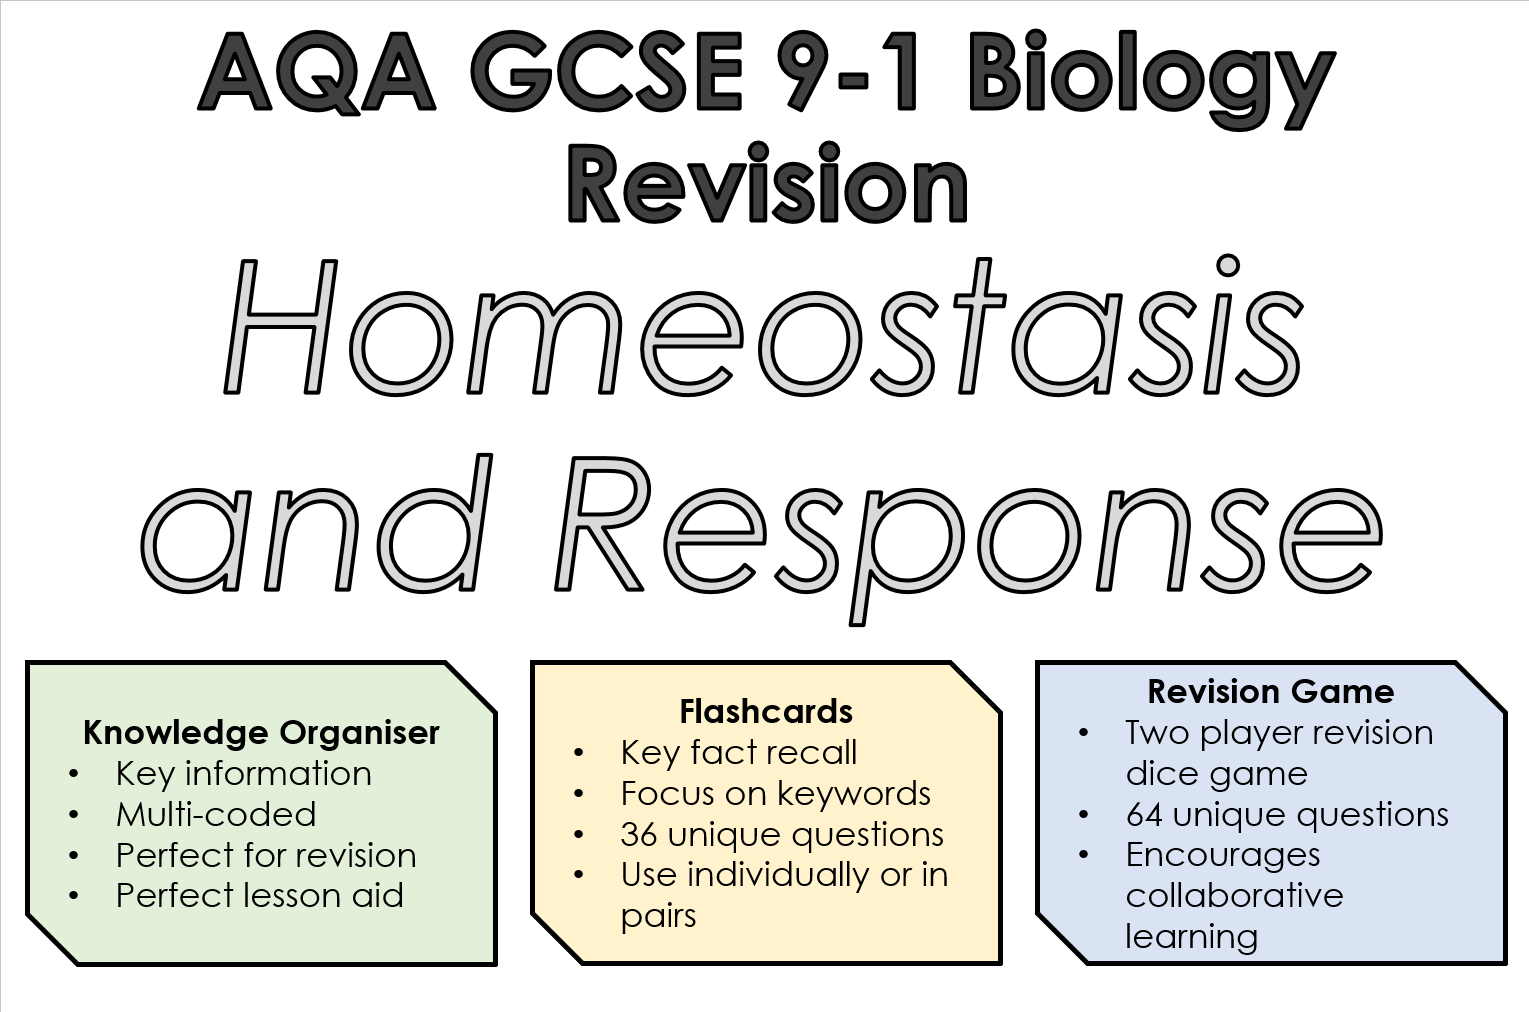 AQA 9-1 GCSE Biology Homeostasis and Response Revision Bundle (Trilogy)